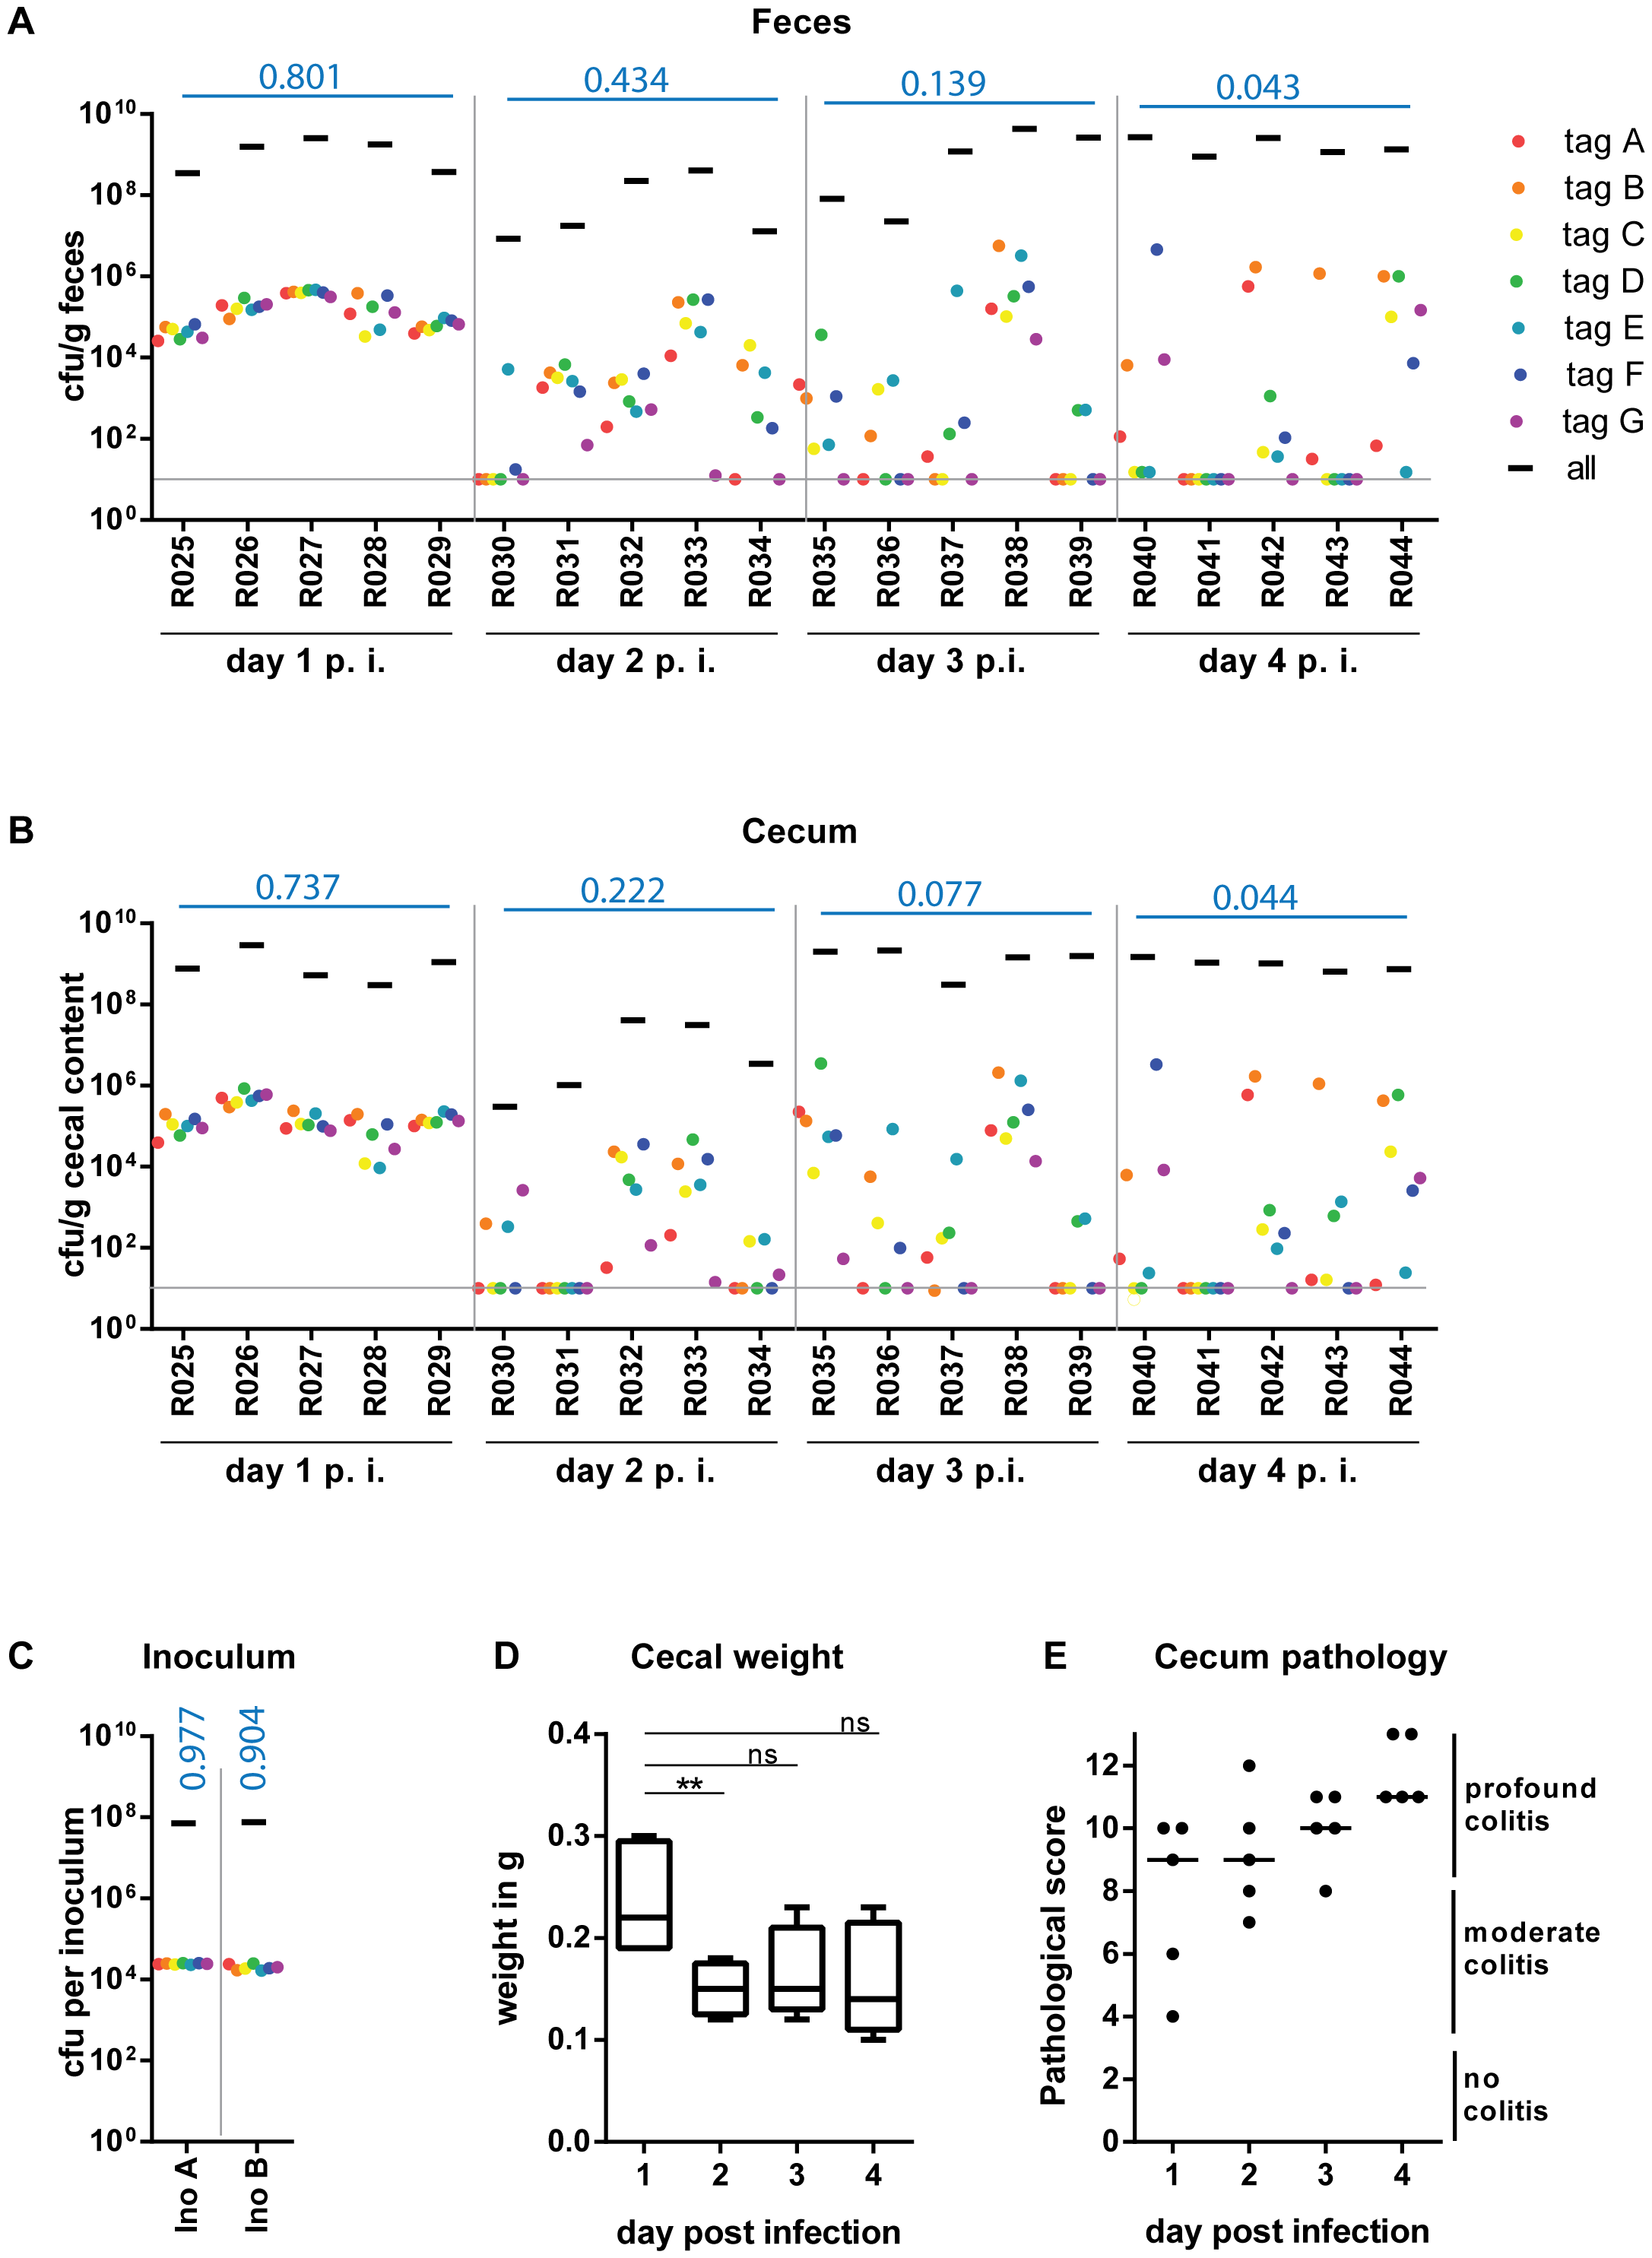 WITS infections reveal severe WITS diversity loss (=reduction in population evenness) during oral infection of C57BL/6 mice starting at day 2 p.i.